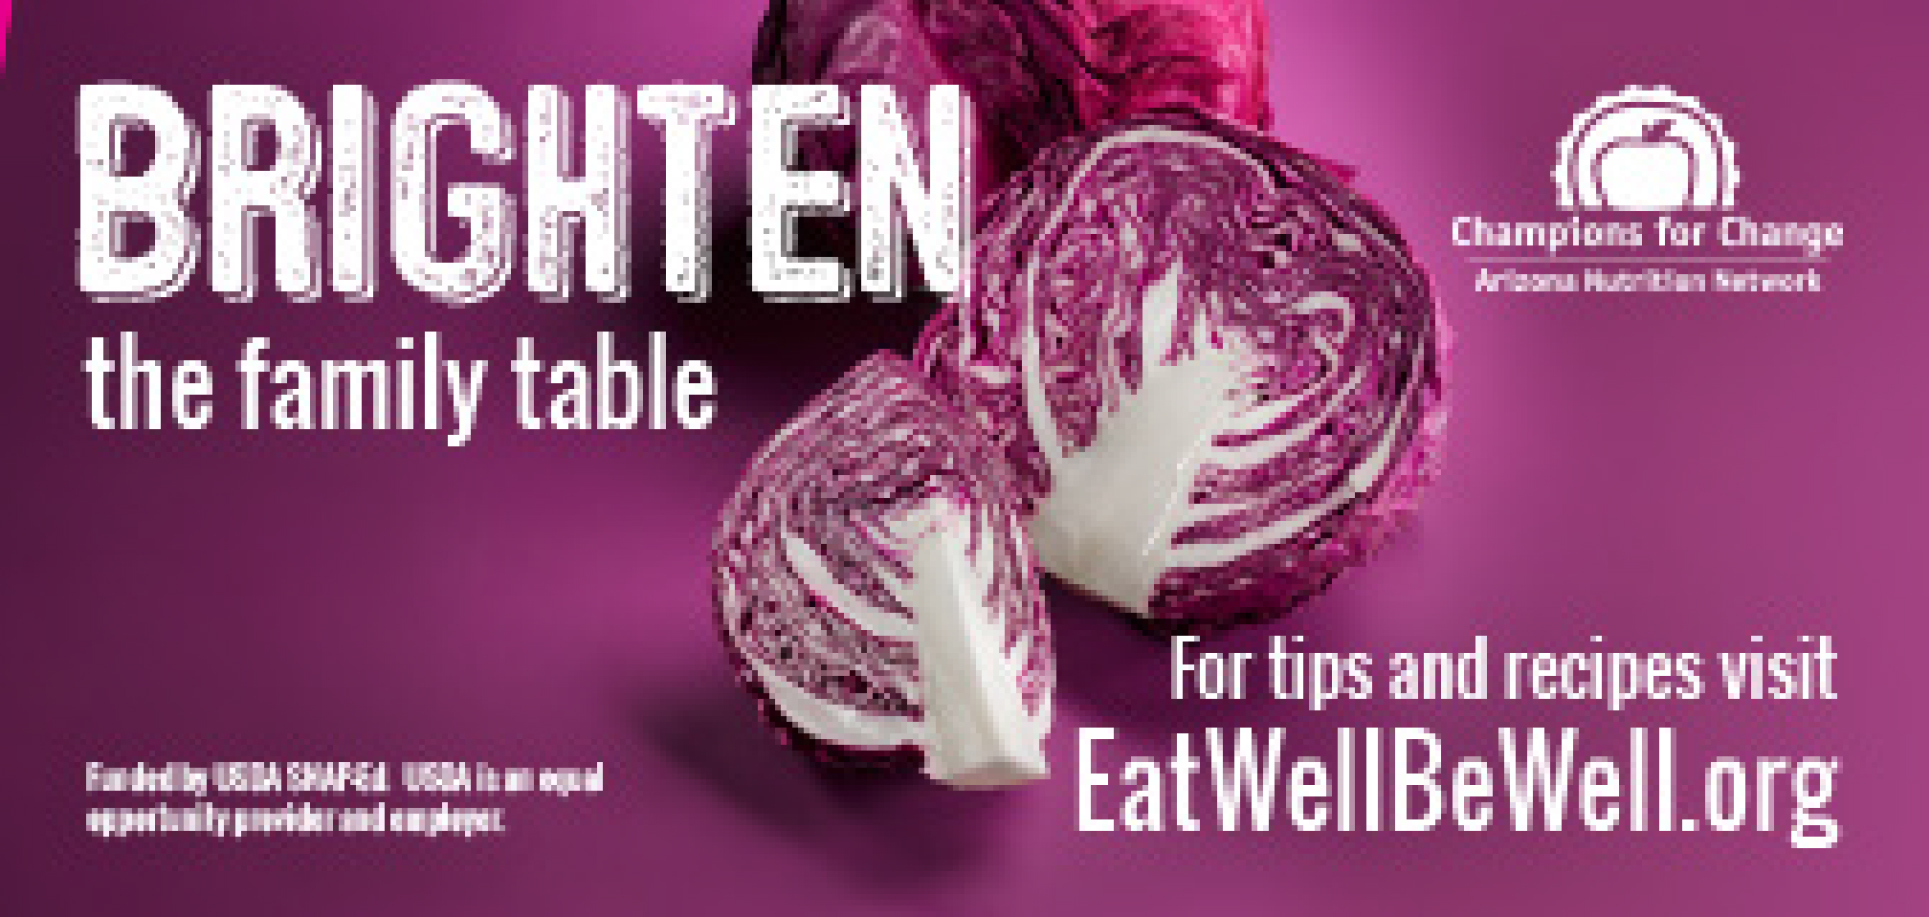 Brighten the Family Table - red cabbage